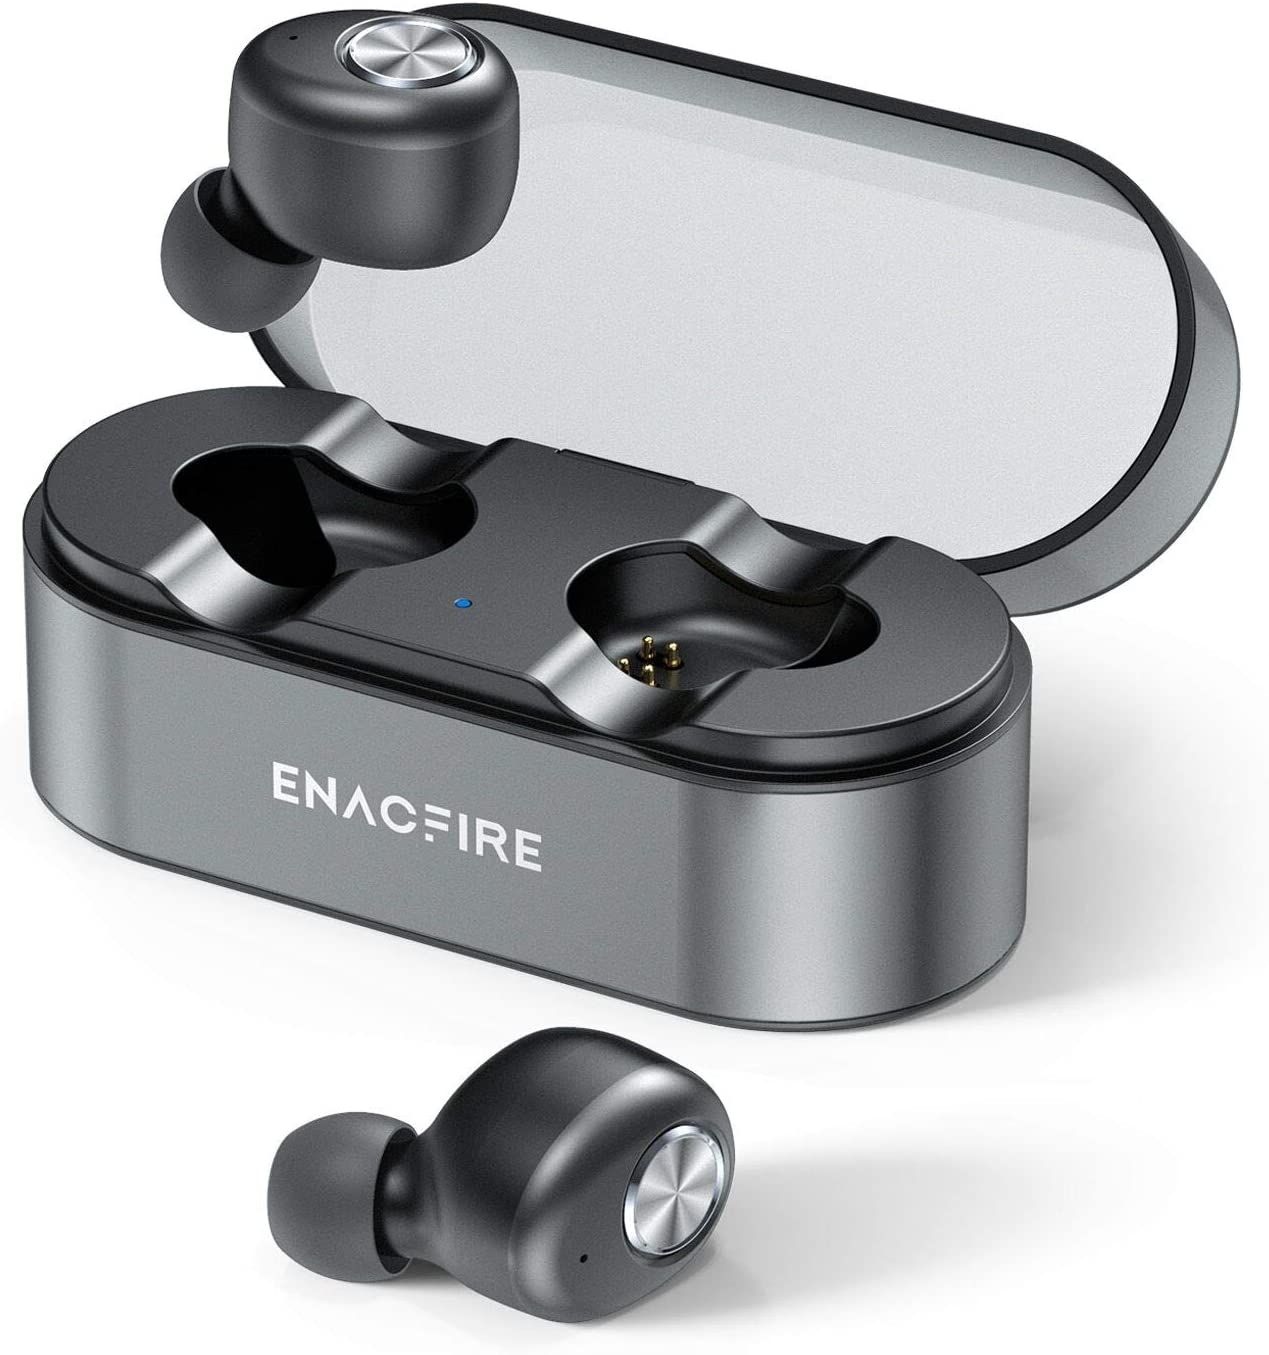 The Best Low Profile Bluetooth Earbuds